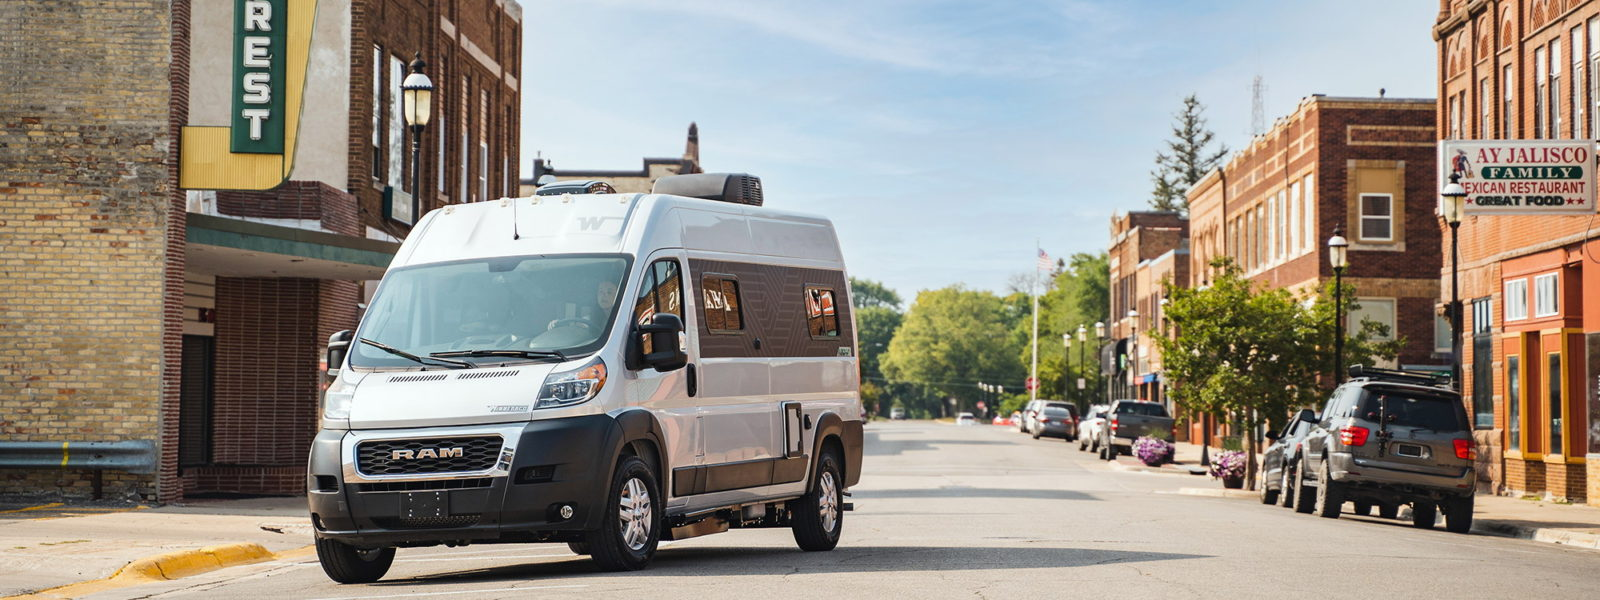 new-winnebago-roam-compact-rv-for-extra-accessibility-redefines-freedom-of-travel